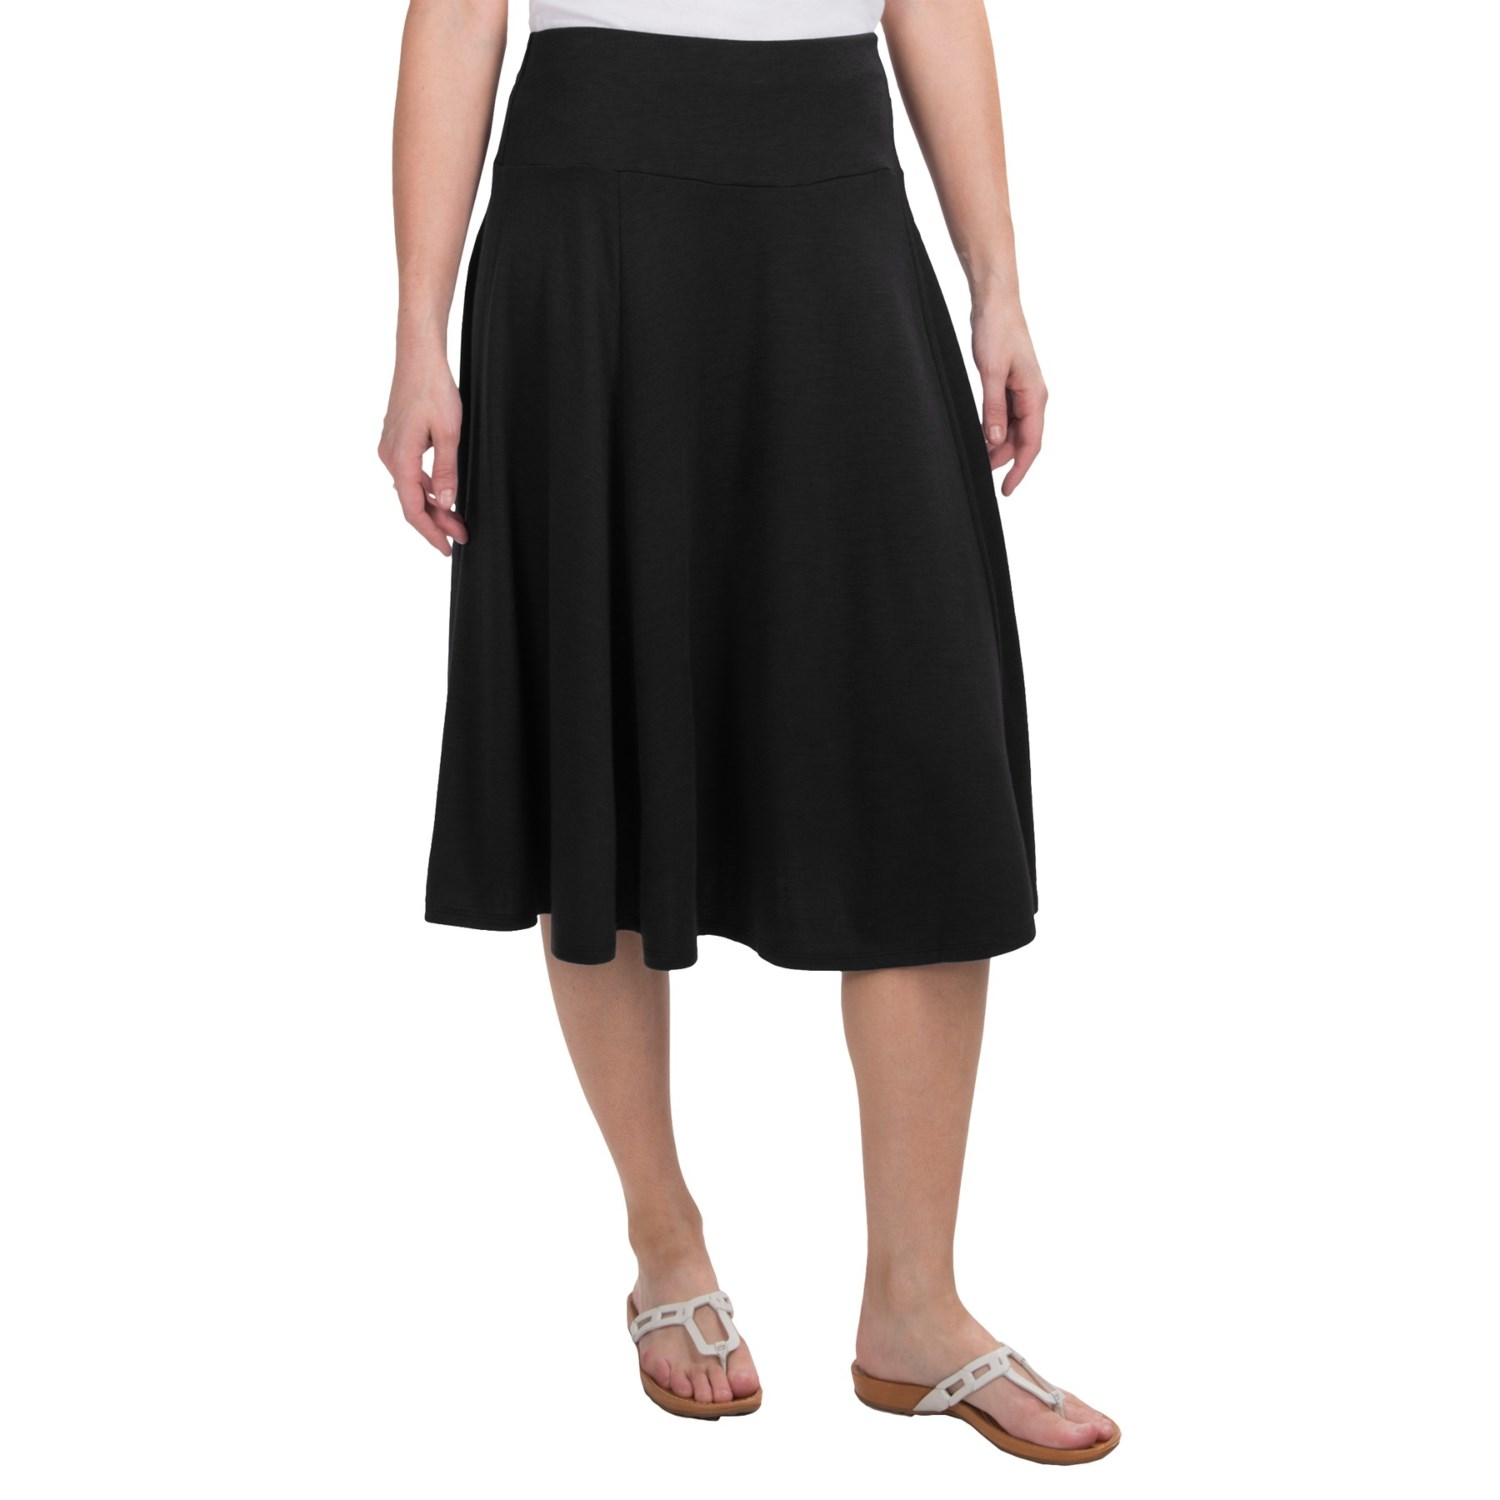 stretch jersey skirt for save 74